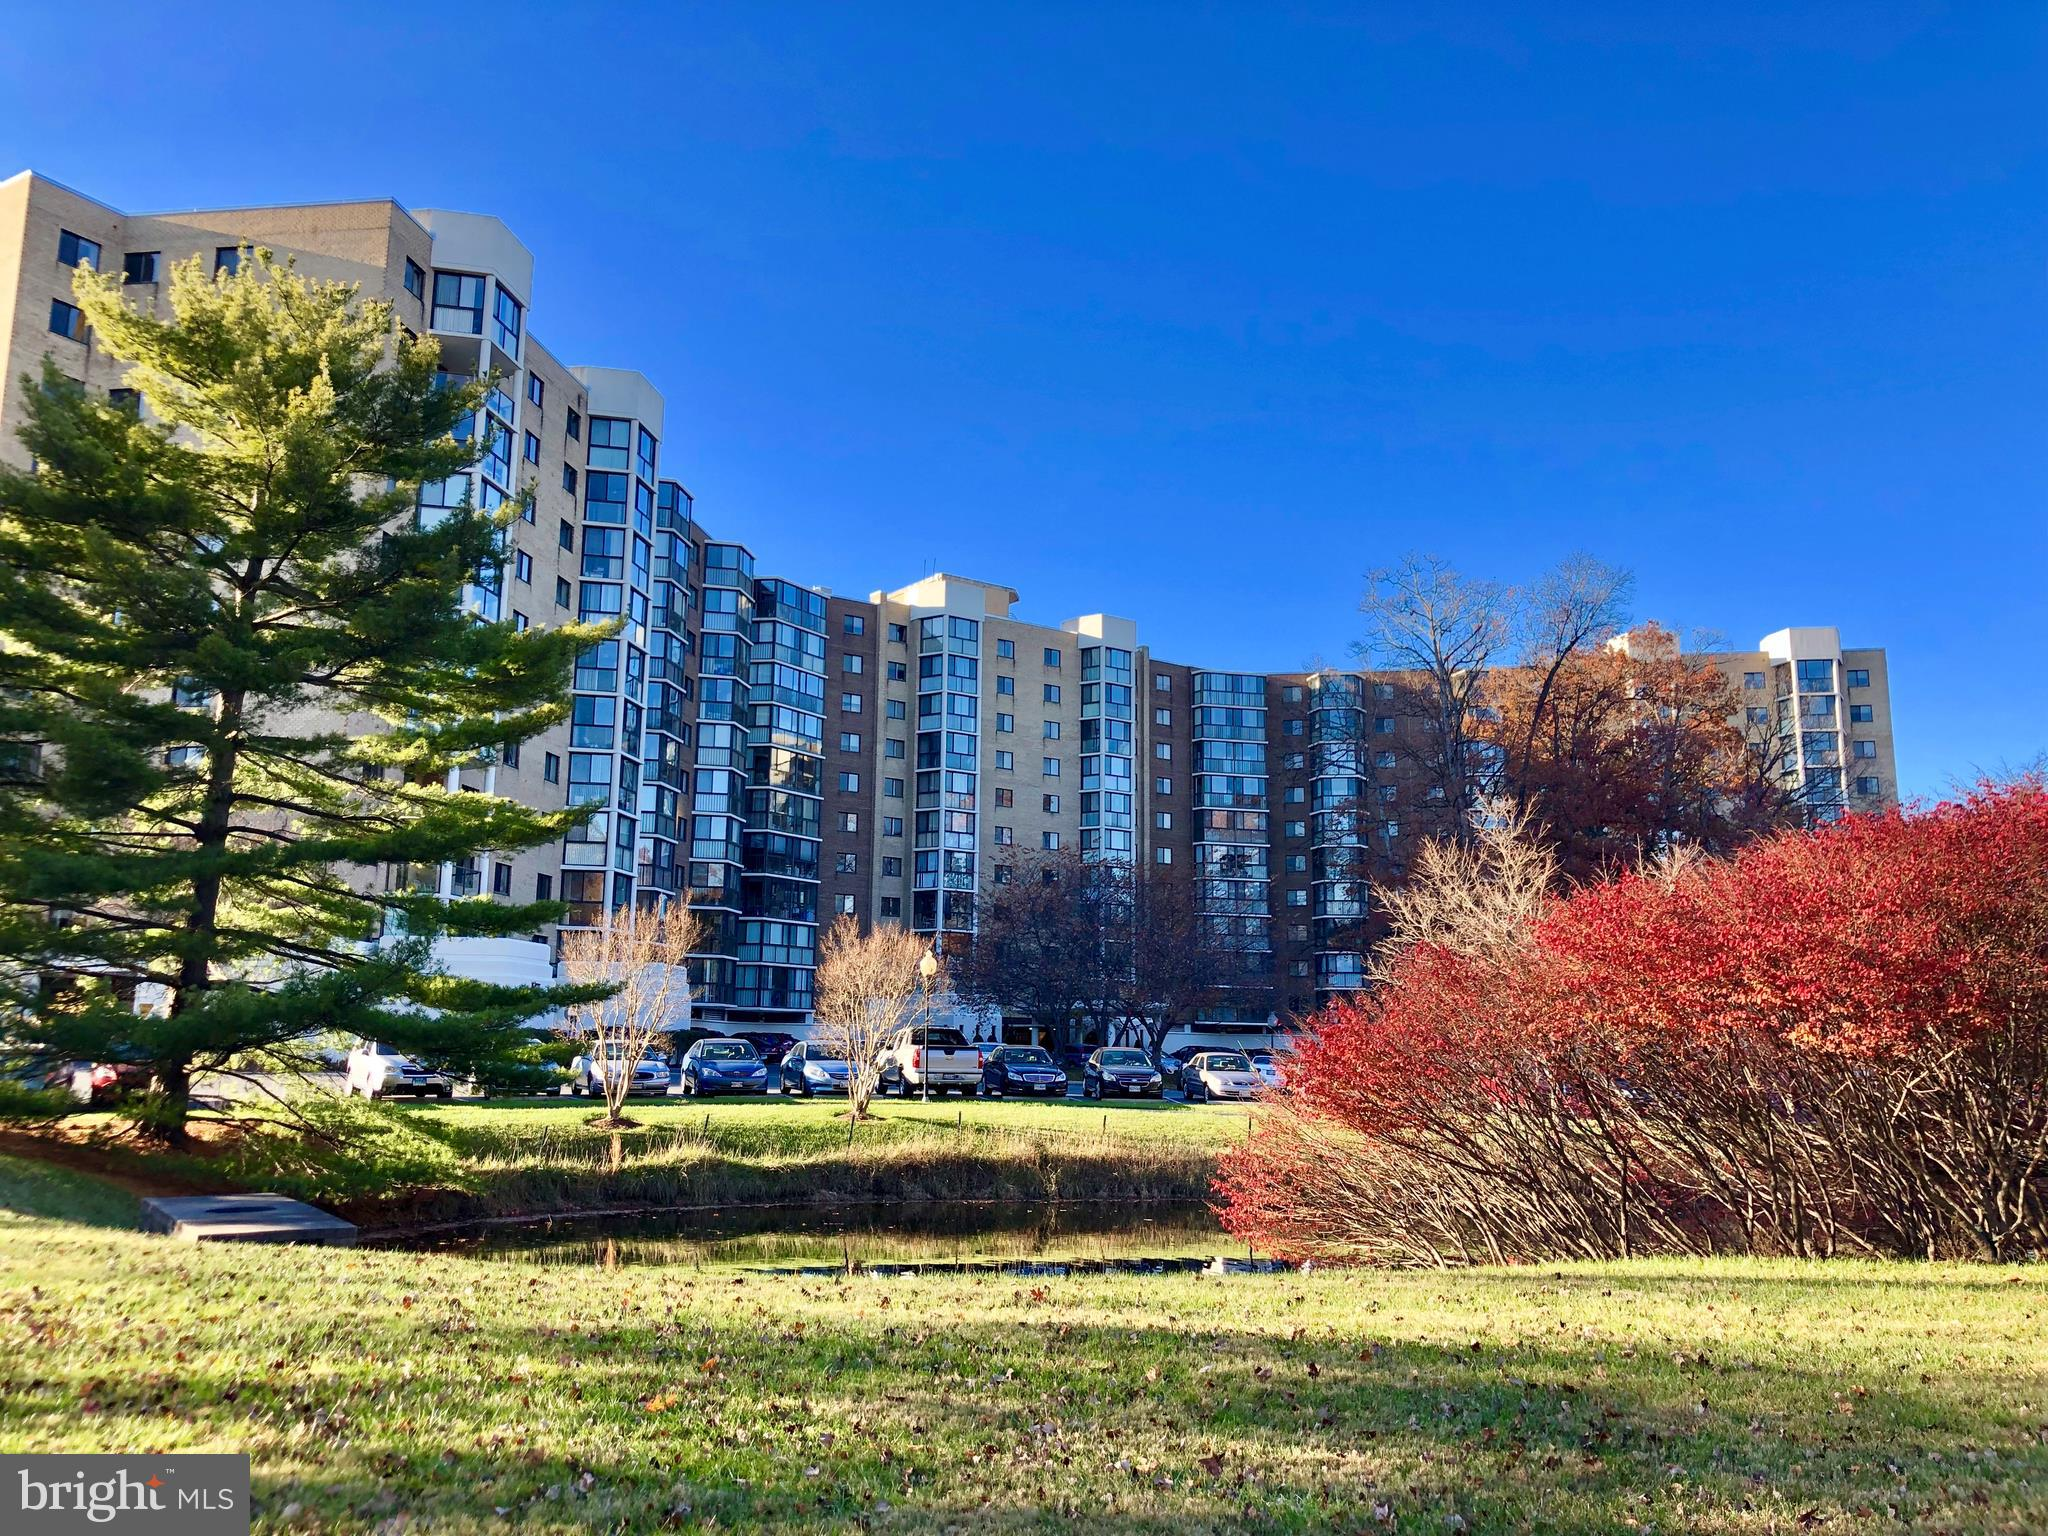 55+ Community, Beautiful 2 Bedroom, 2 Bath Condo, GG Model, with spectacular views of water and golf